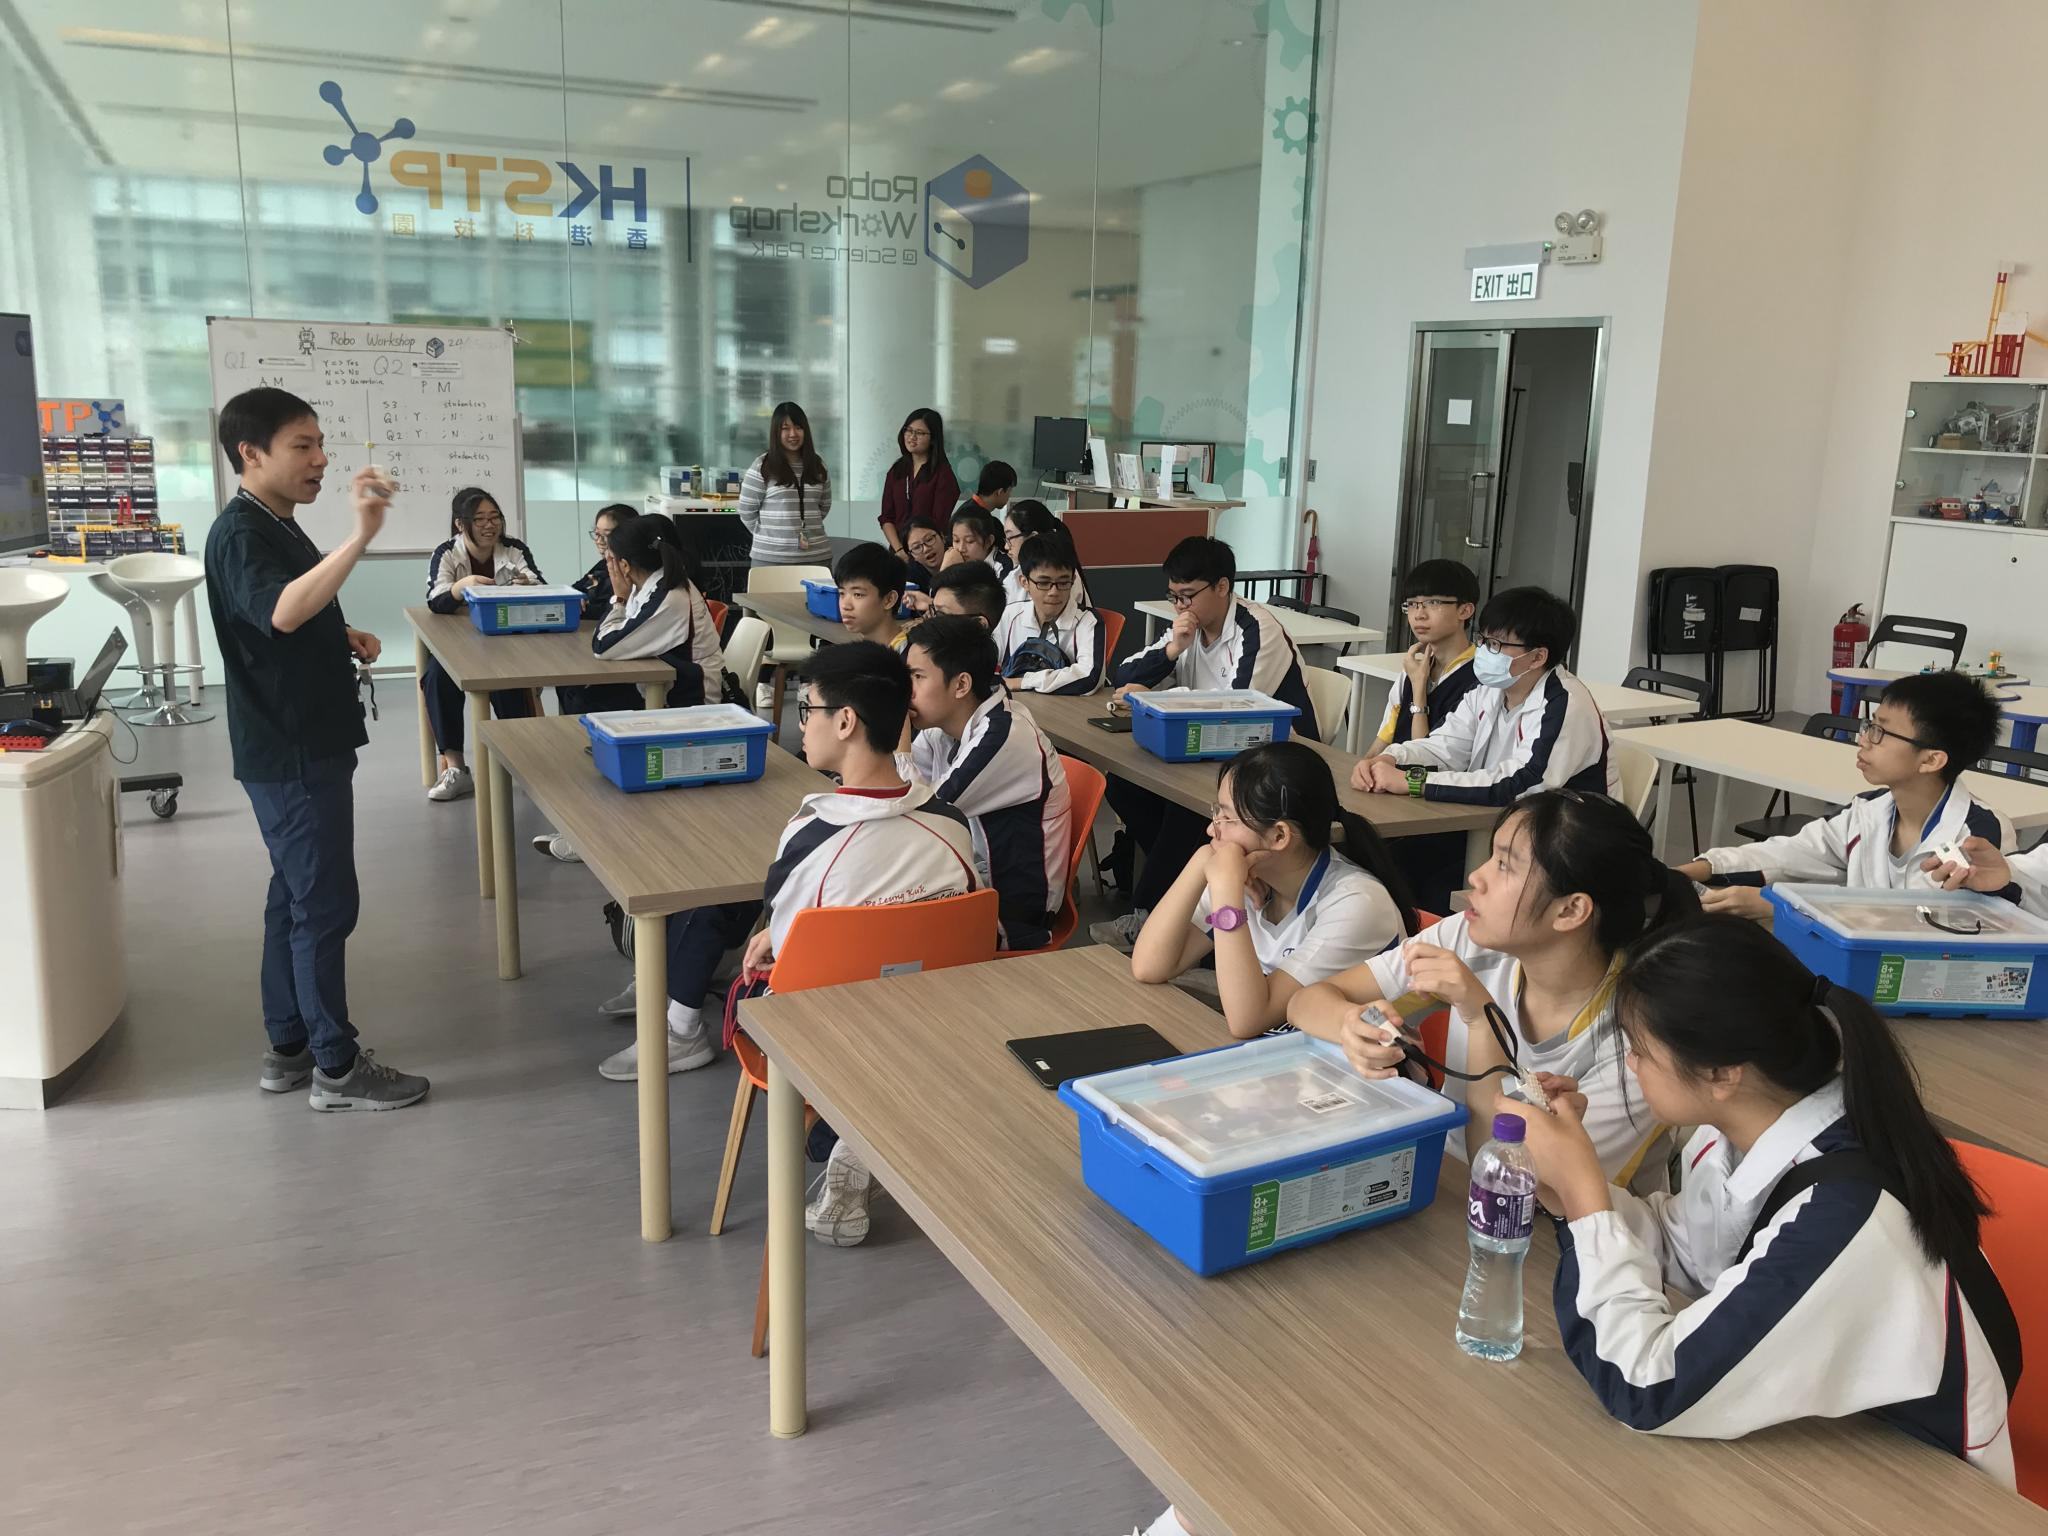 Students are learning about the scientific principle of the crane.